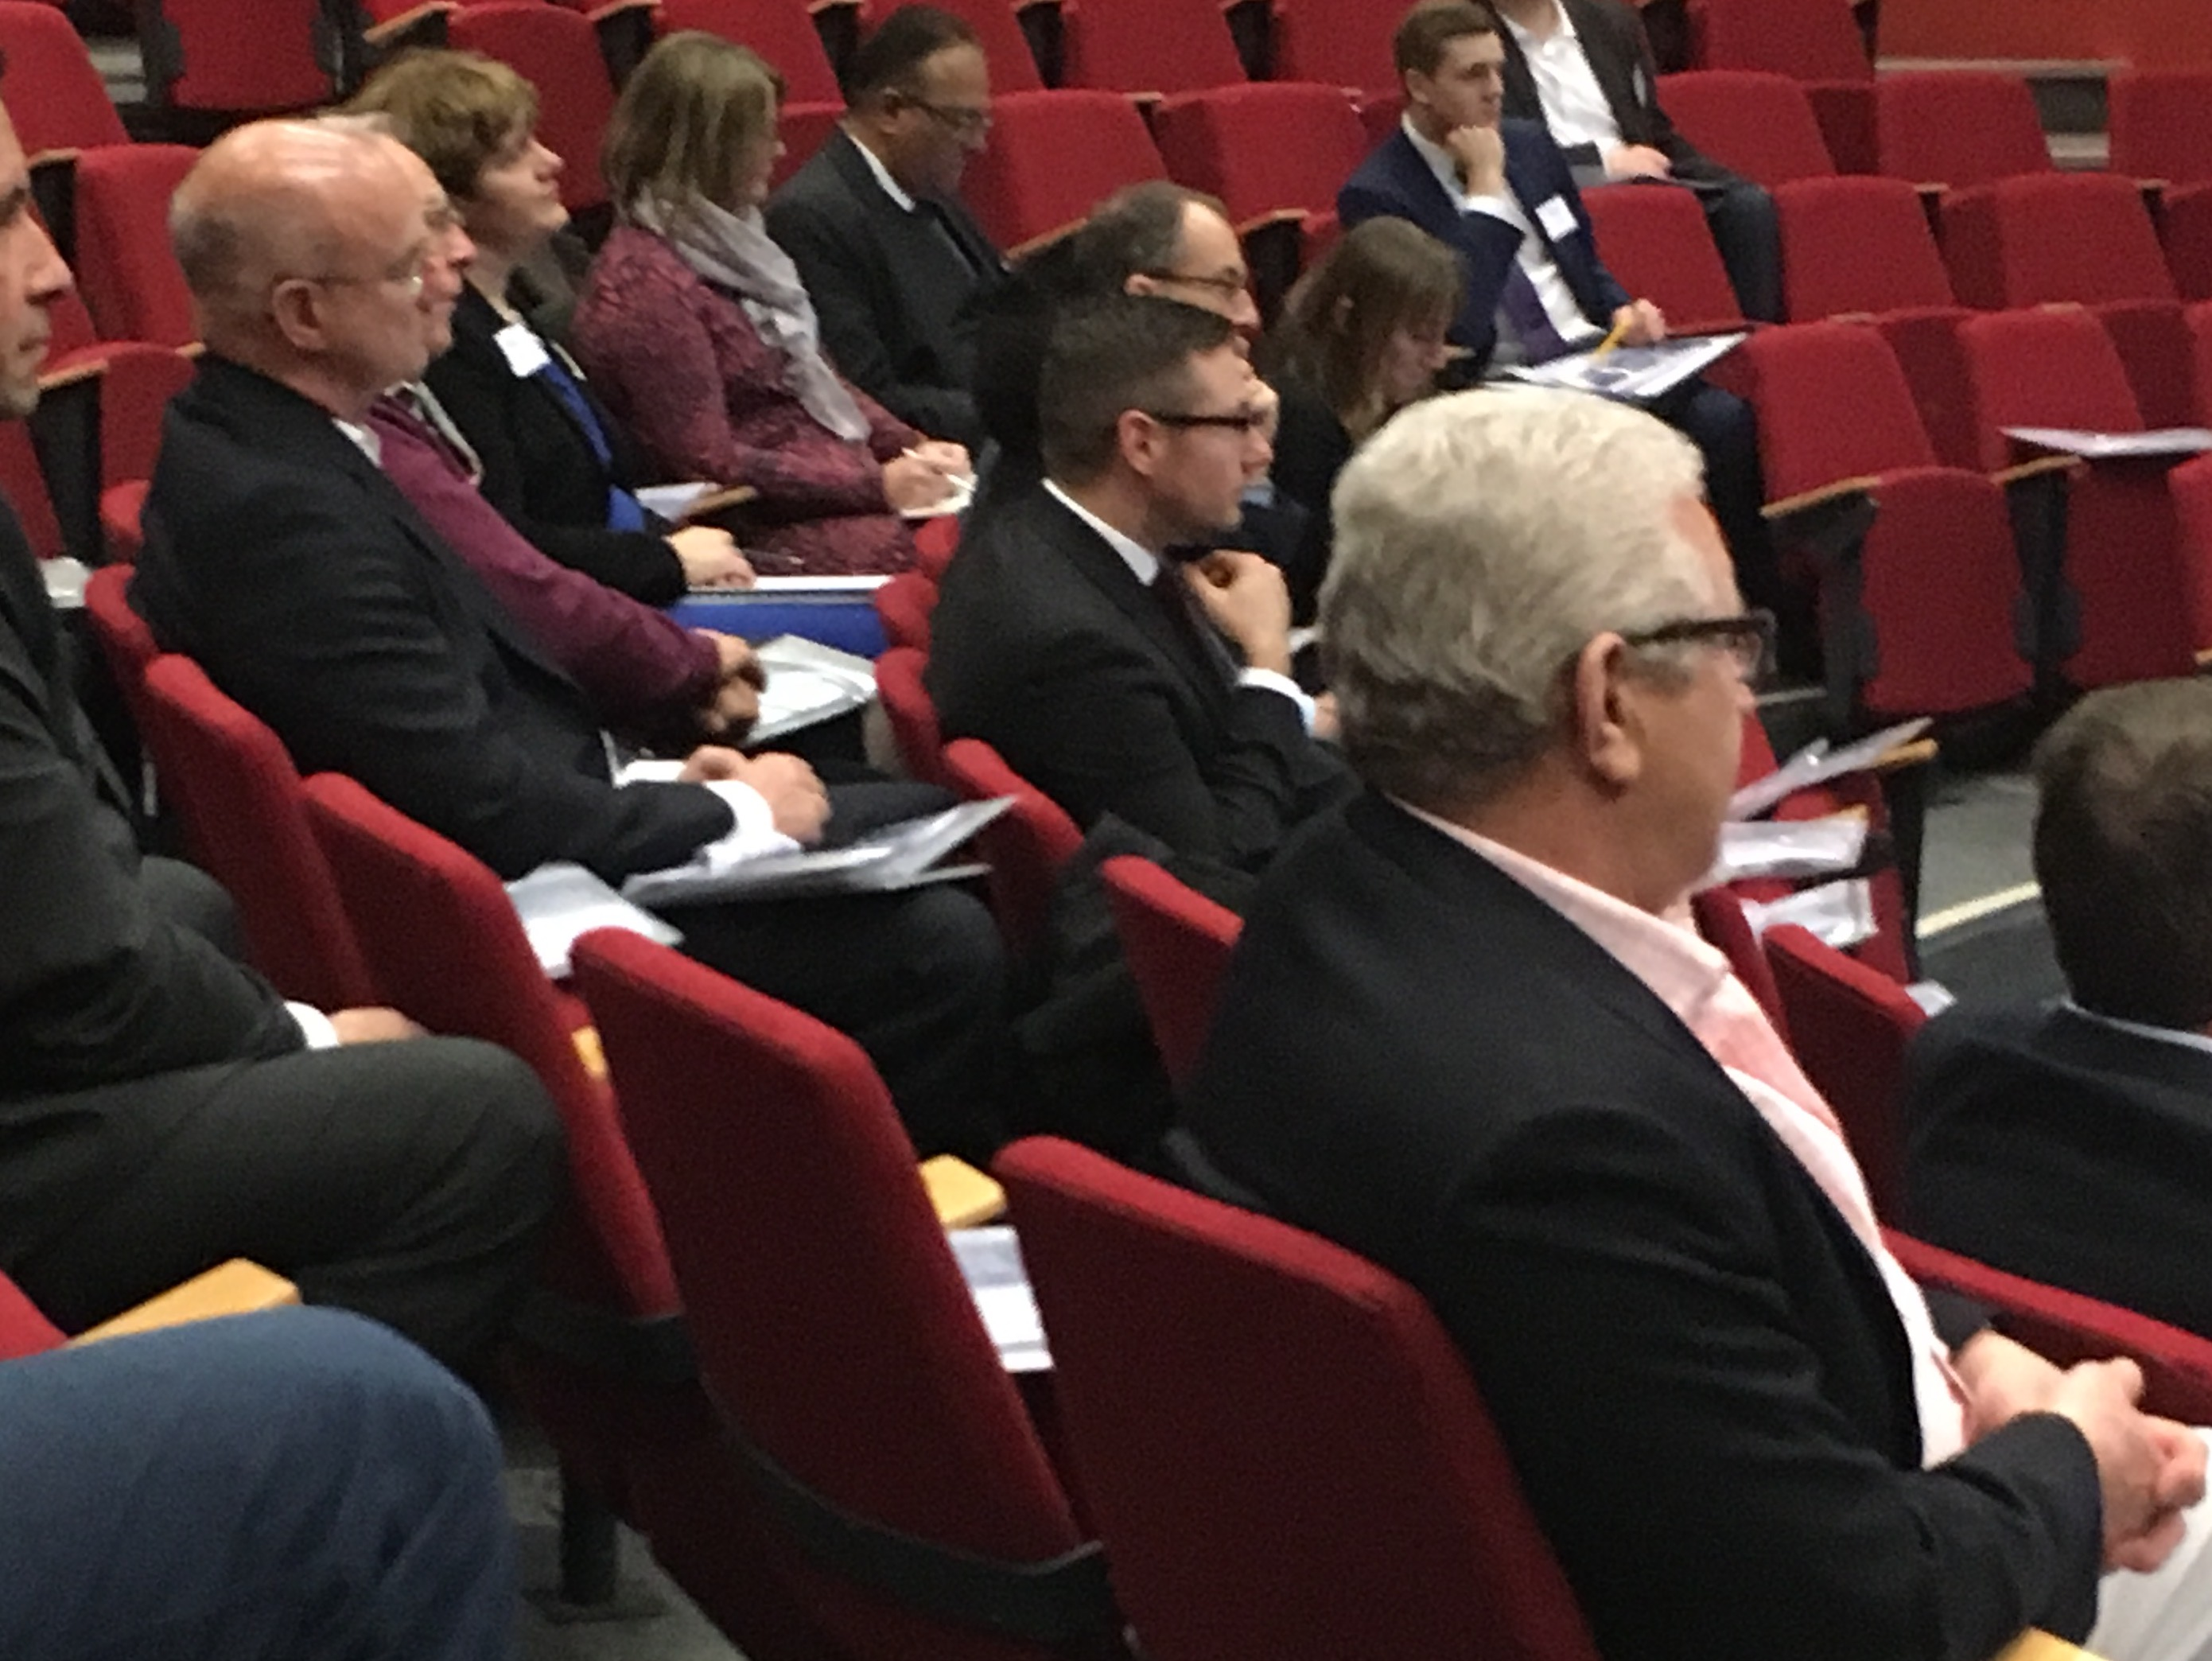 coventry summit audience